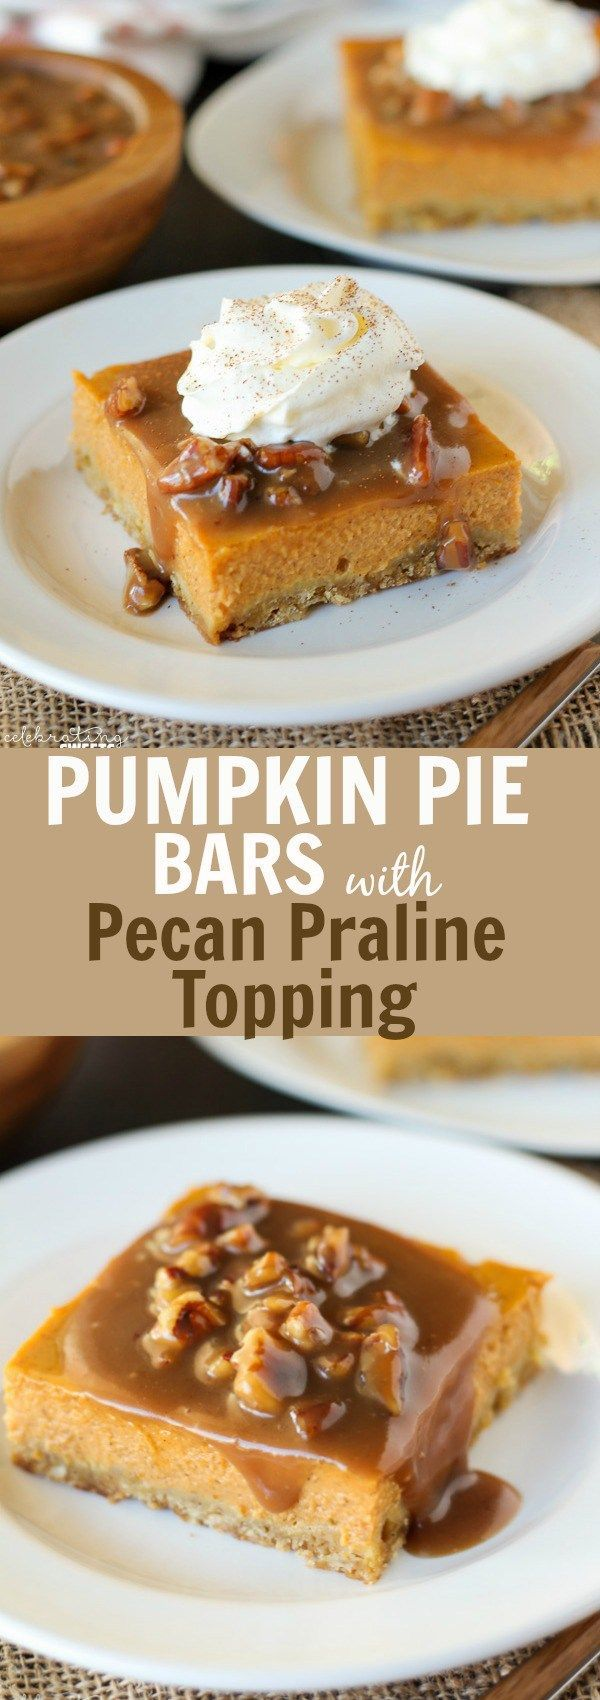 ... Recipes on Pinterest | Pumpkin oatmeal, Thanksgiving and Pumpkin pies